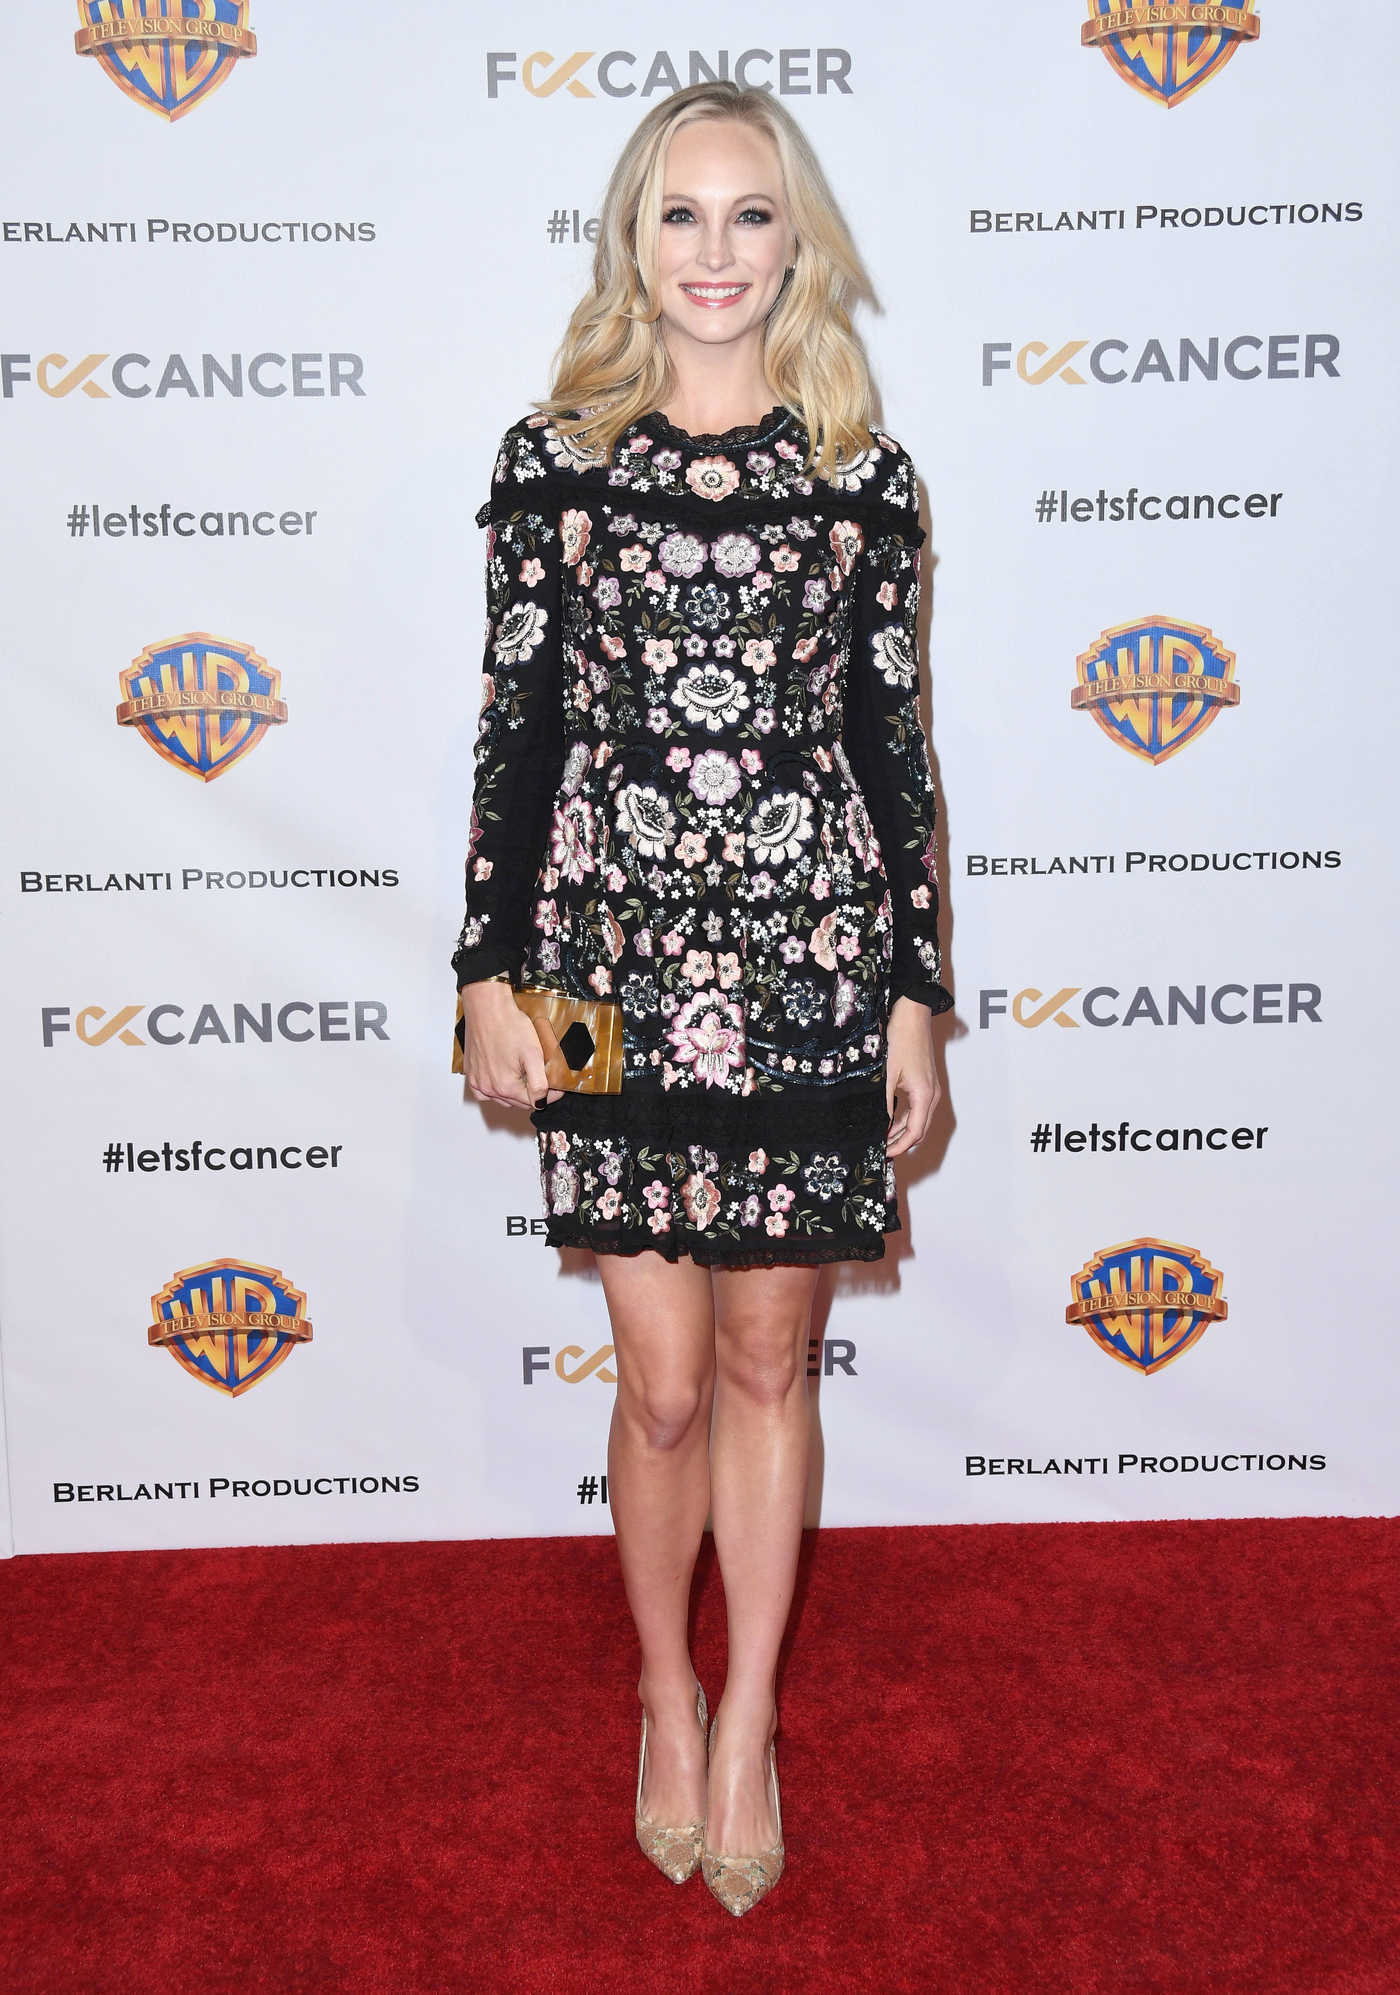 Candice King Attends Barbara Berlanti Heroes Gala Benefitting F-ck Cancer in Burbank 10/13/2018